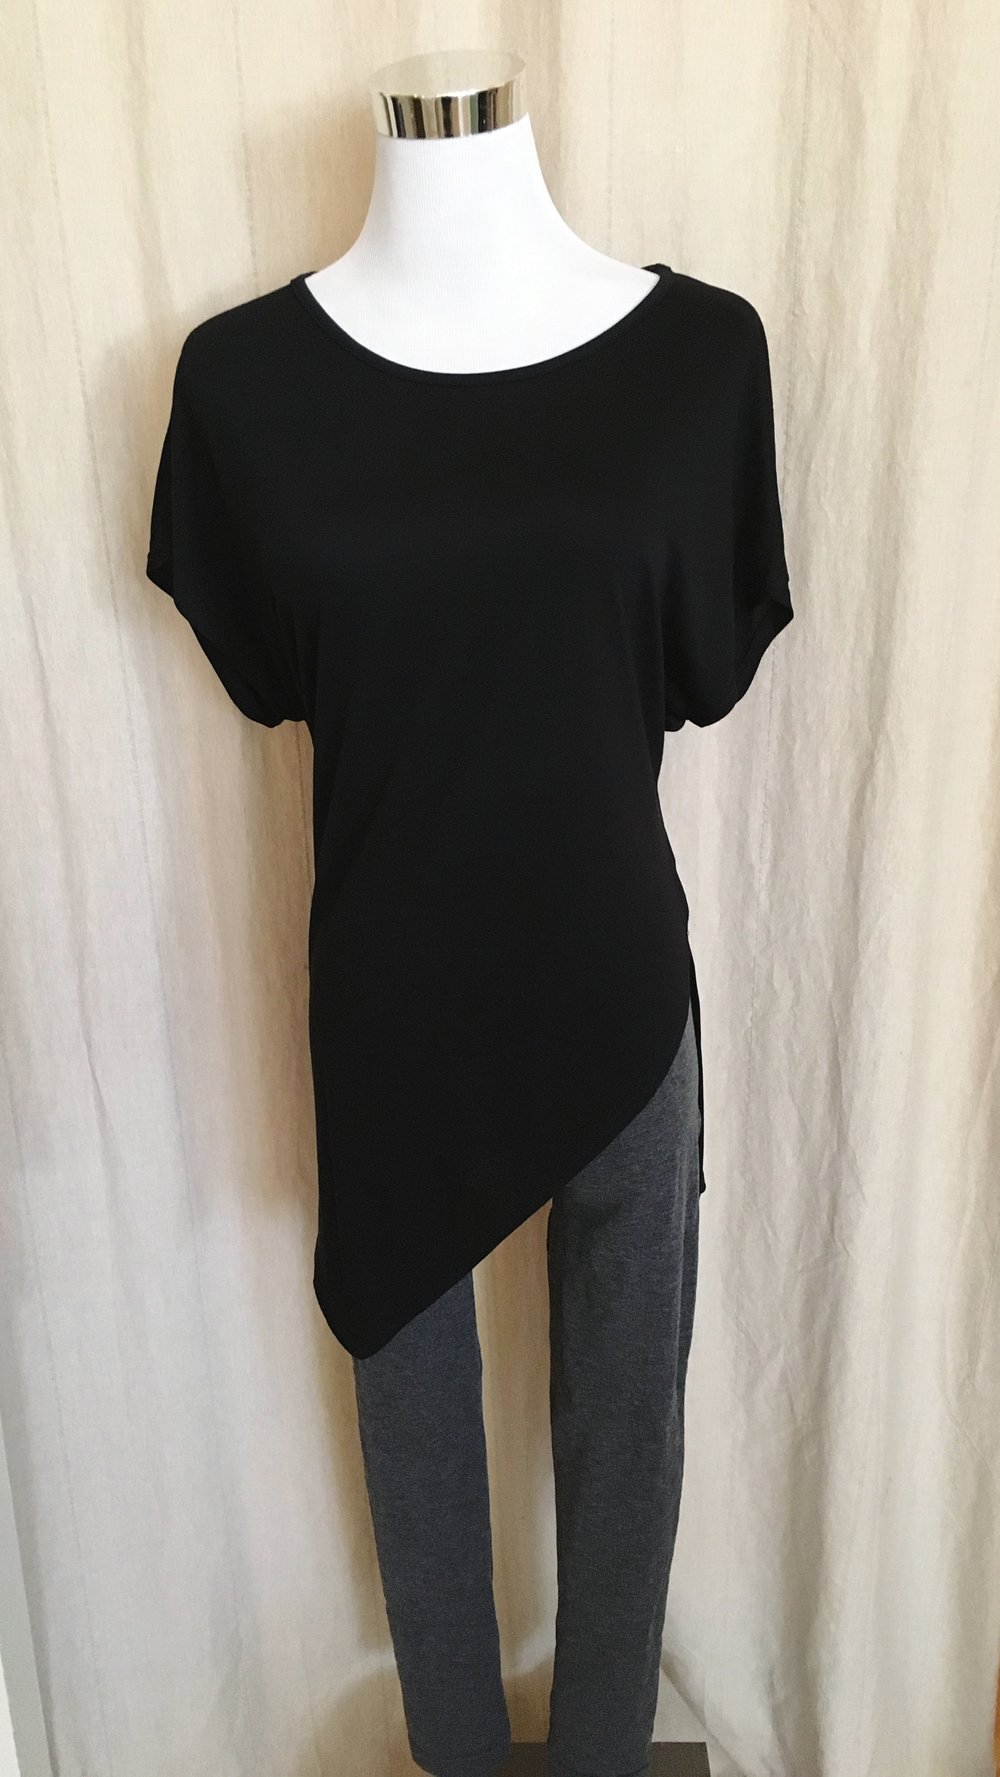 Asymmetrical fun tee in black and grey $28